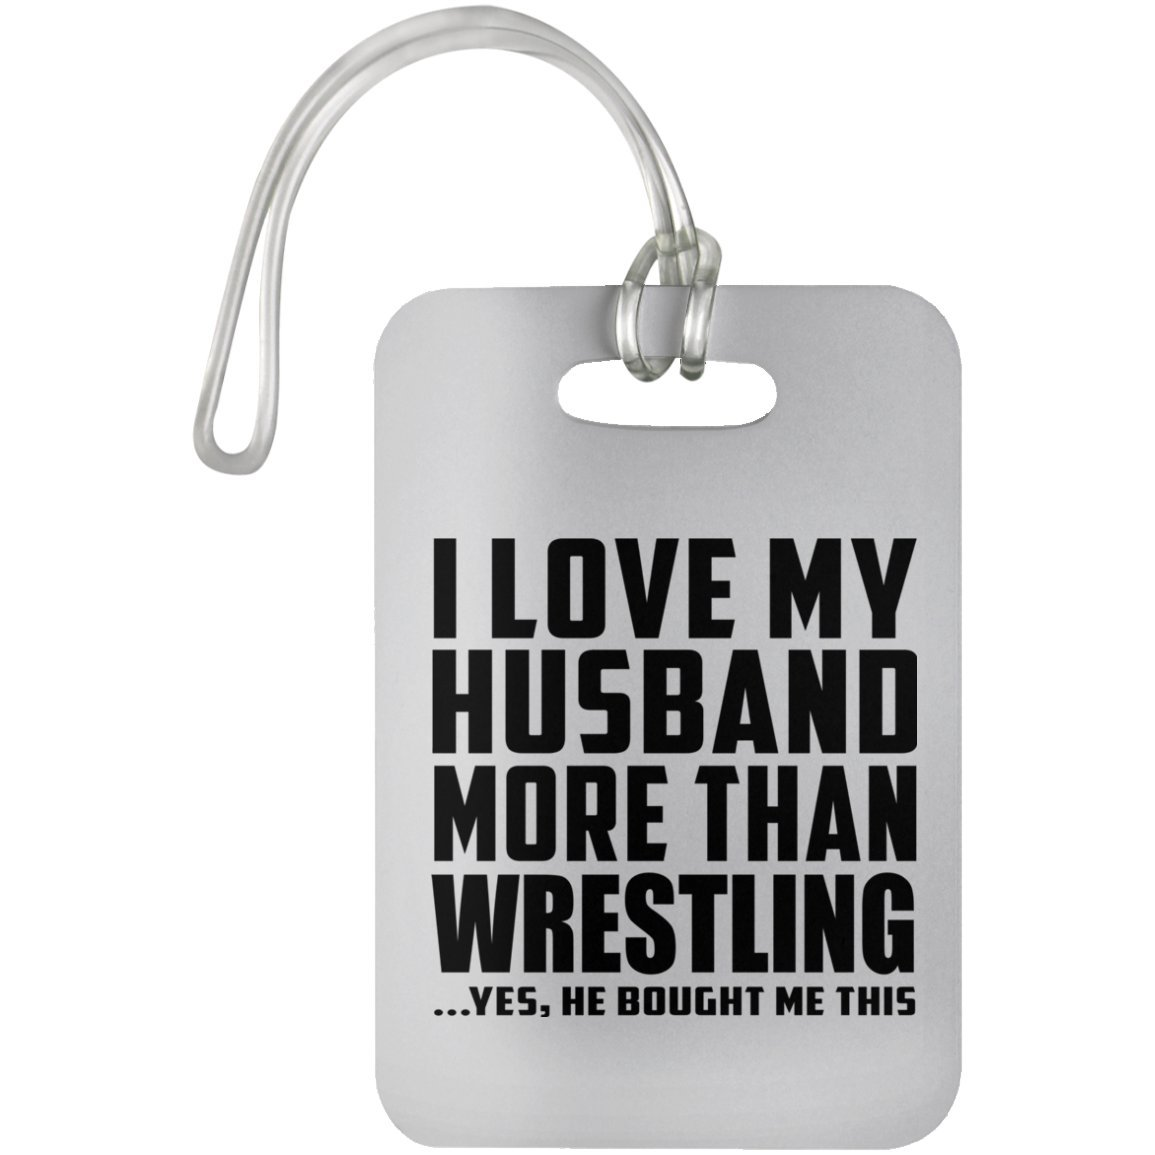 I Love My Husband More Than Wrestling .He Bought Me This - Luggage Tag, Suitcase Bag ID Tag by Designsify